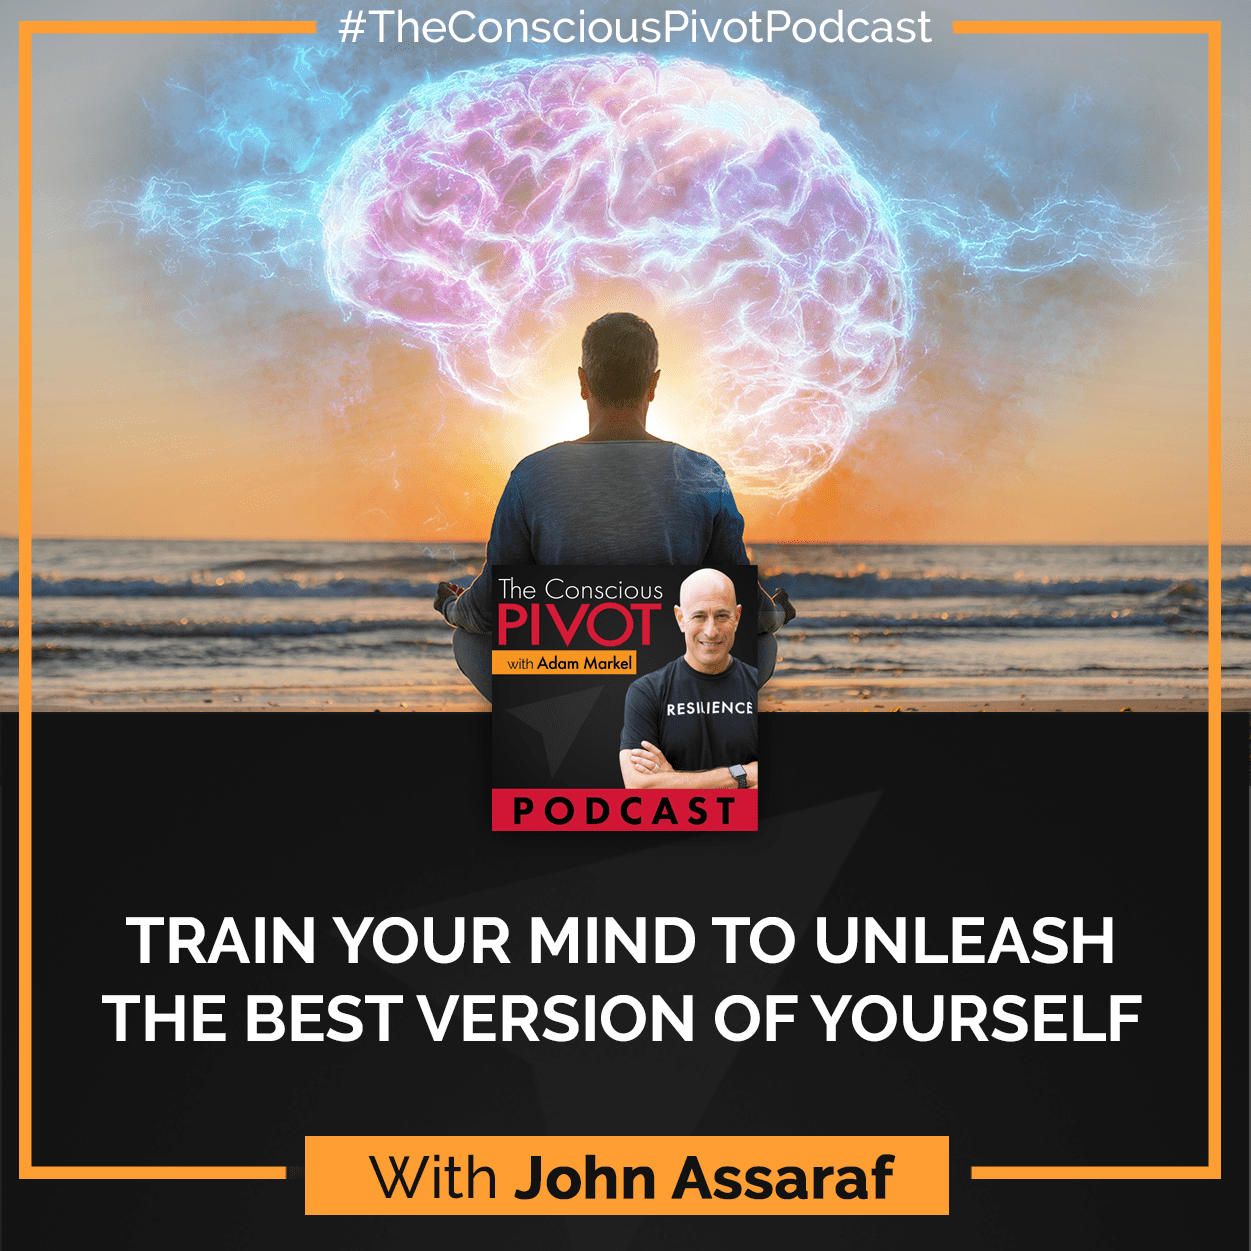 Train Your Mind To Unleash The Best Version Of Yourself With John Assaraf